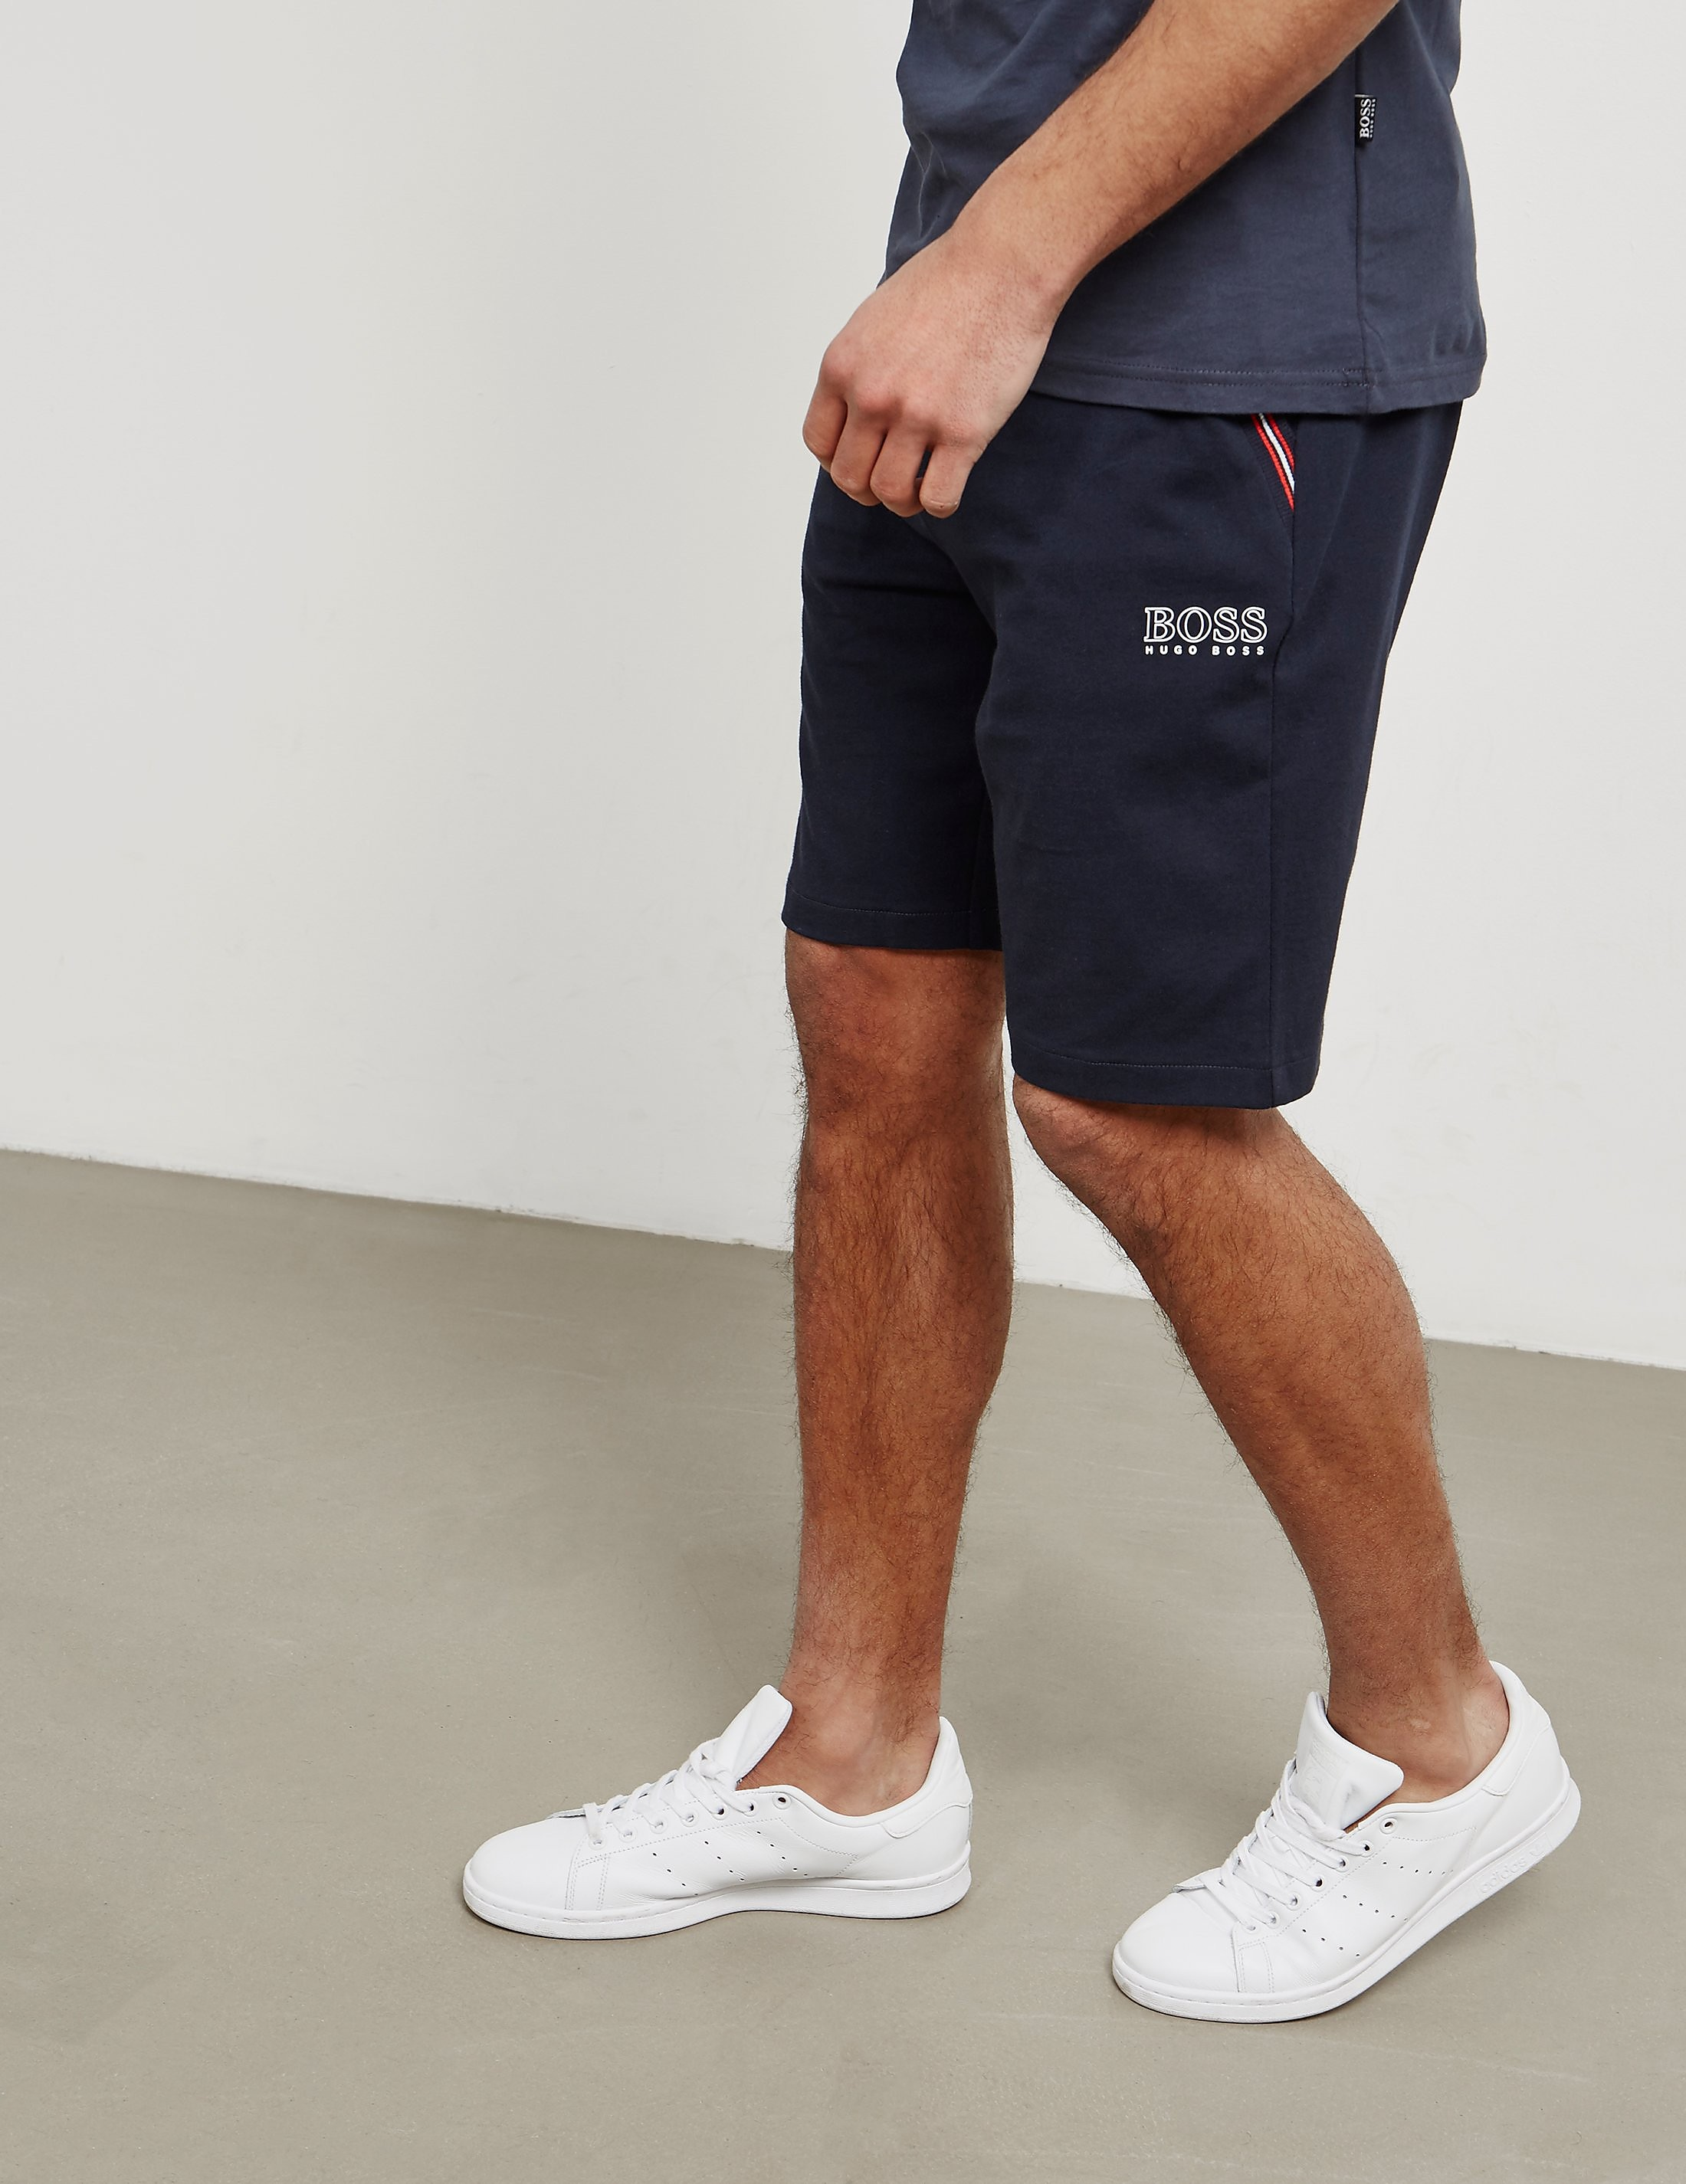 BOSS Trim Fleece Shorts